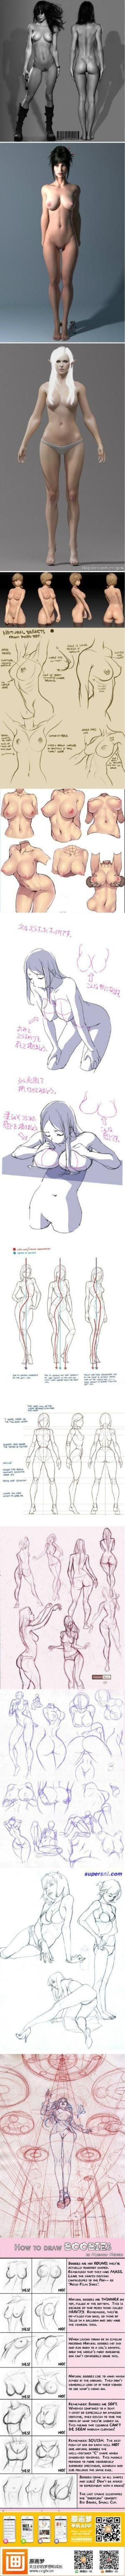 Body anatomy. How to draw female body. by Sandro Salome